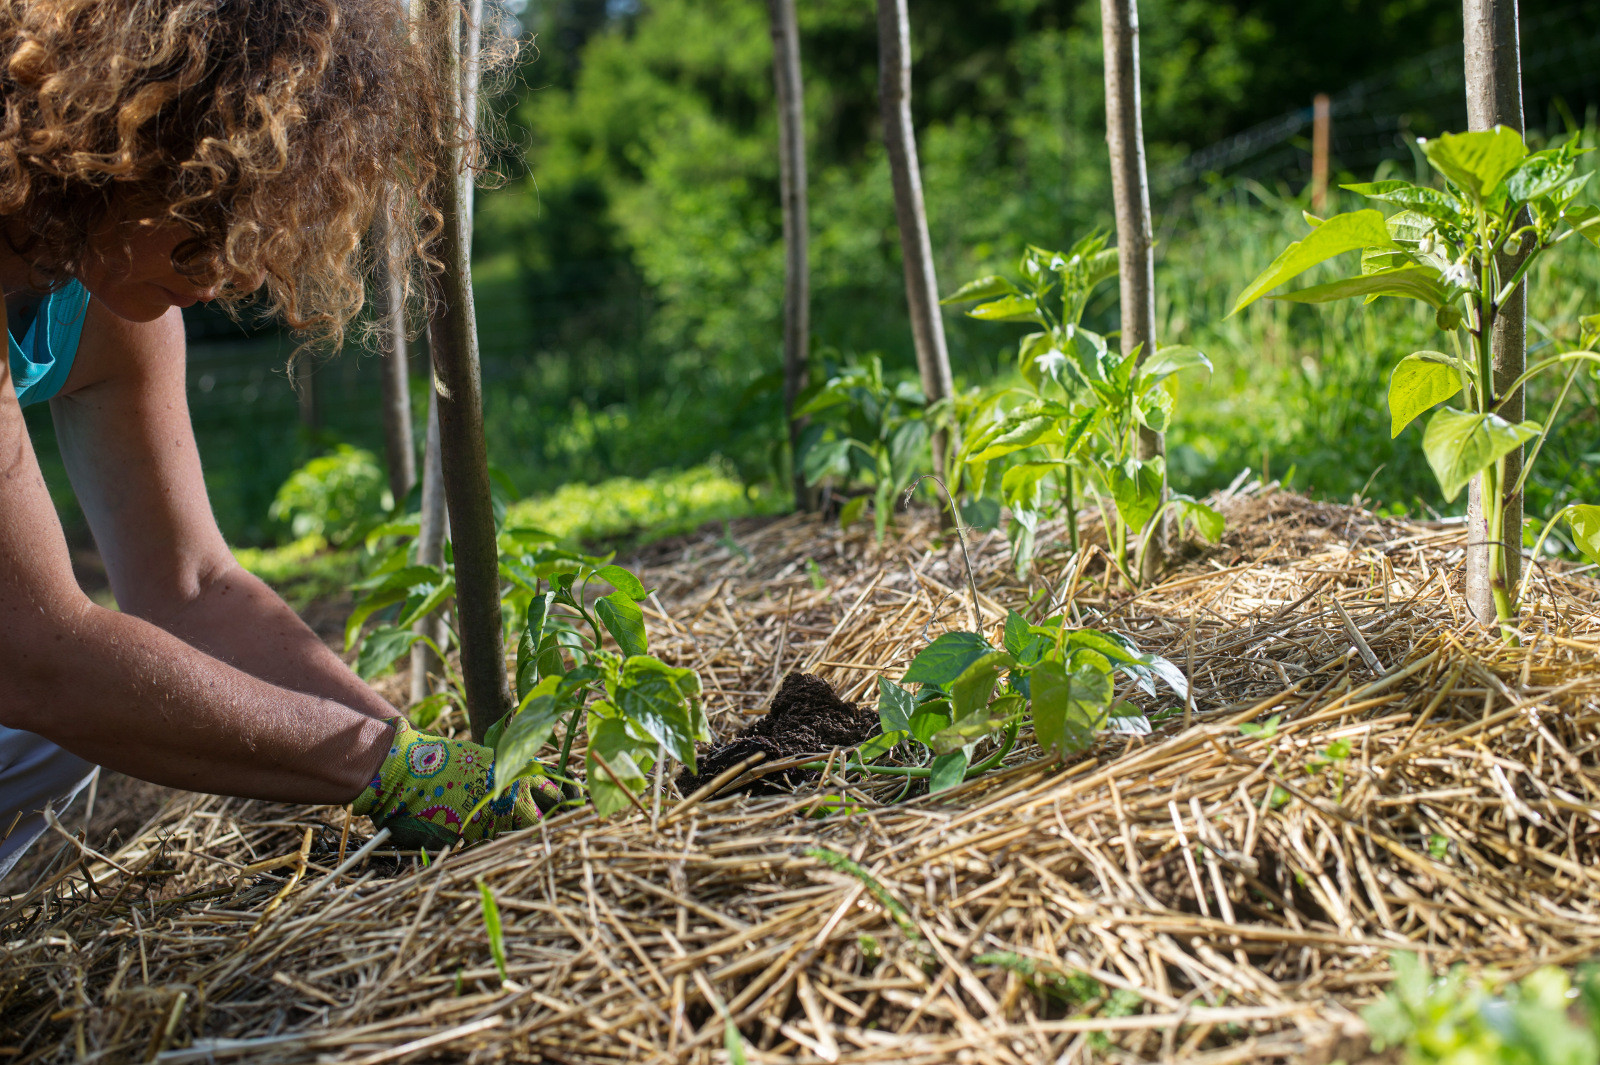 No Till Farming For Healthier Soil And Lifestyles